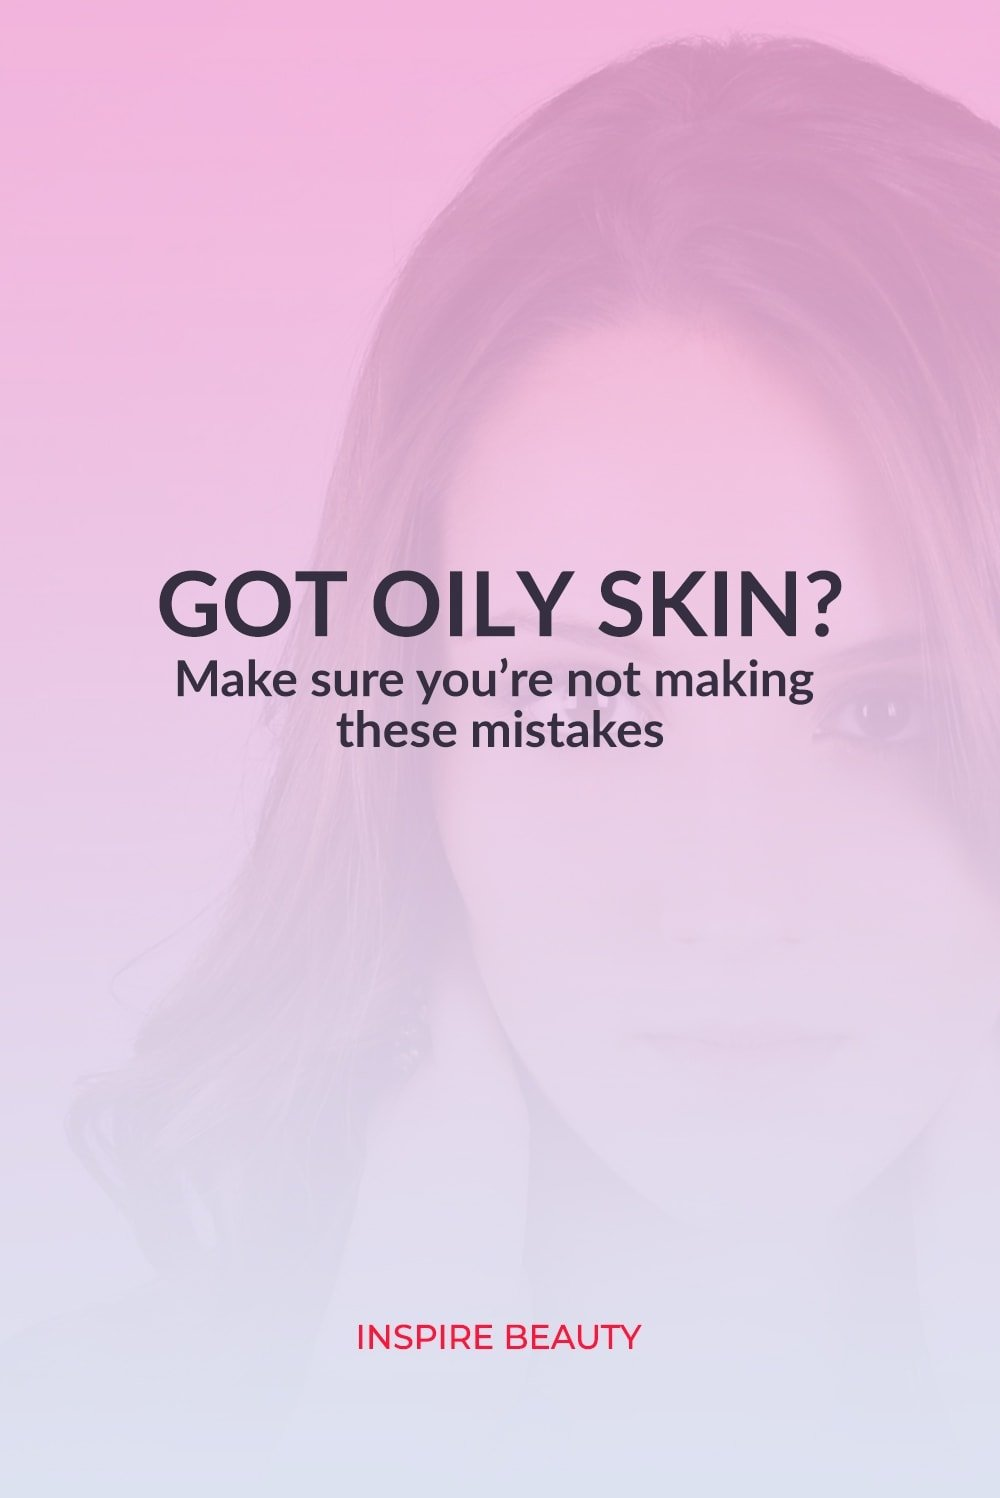 Tips for how to balance oily skin with diet and skin care.